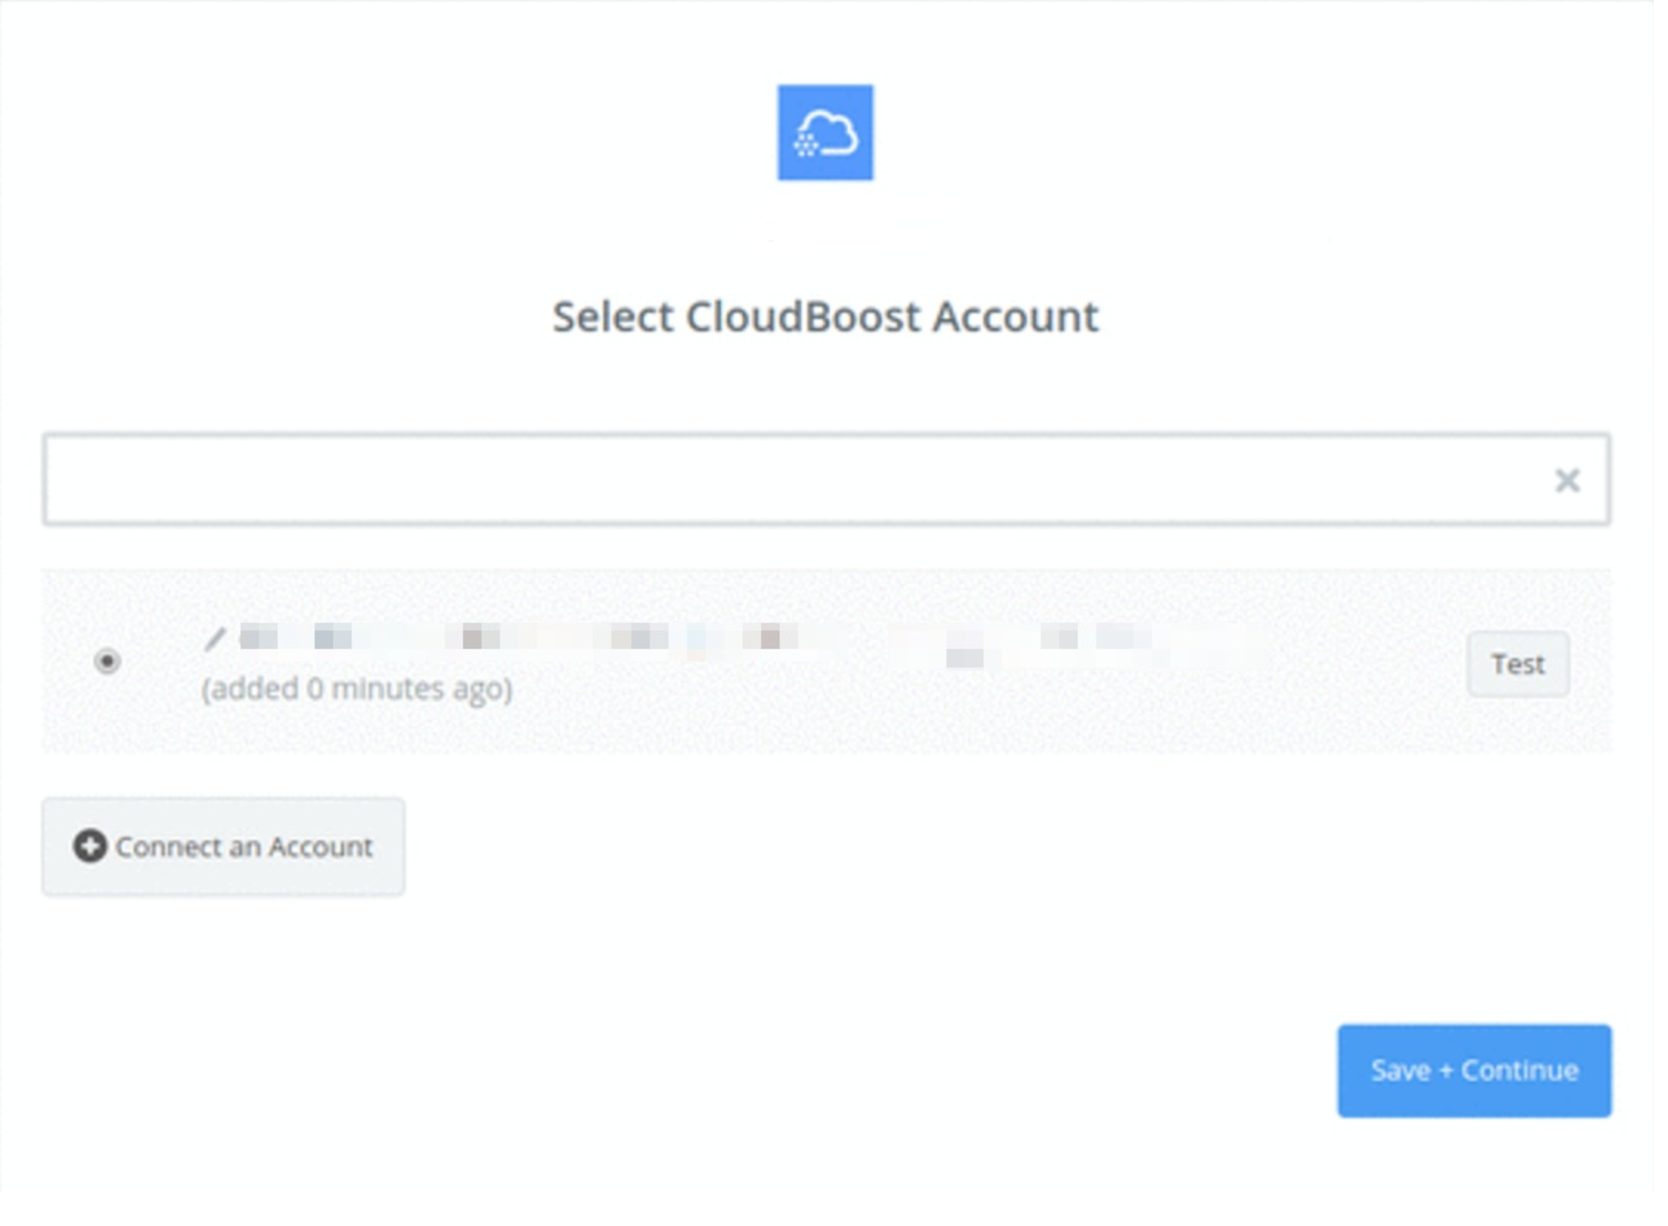 CloudBoost connection successfull